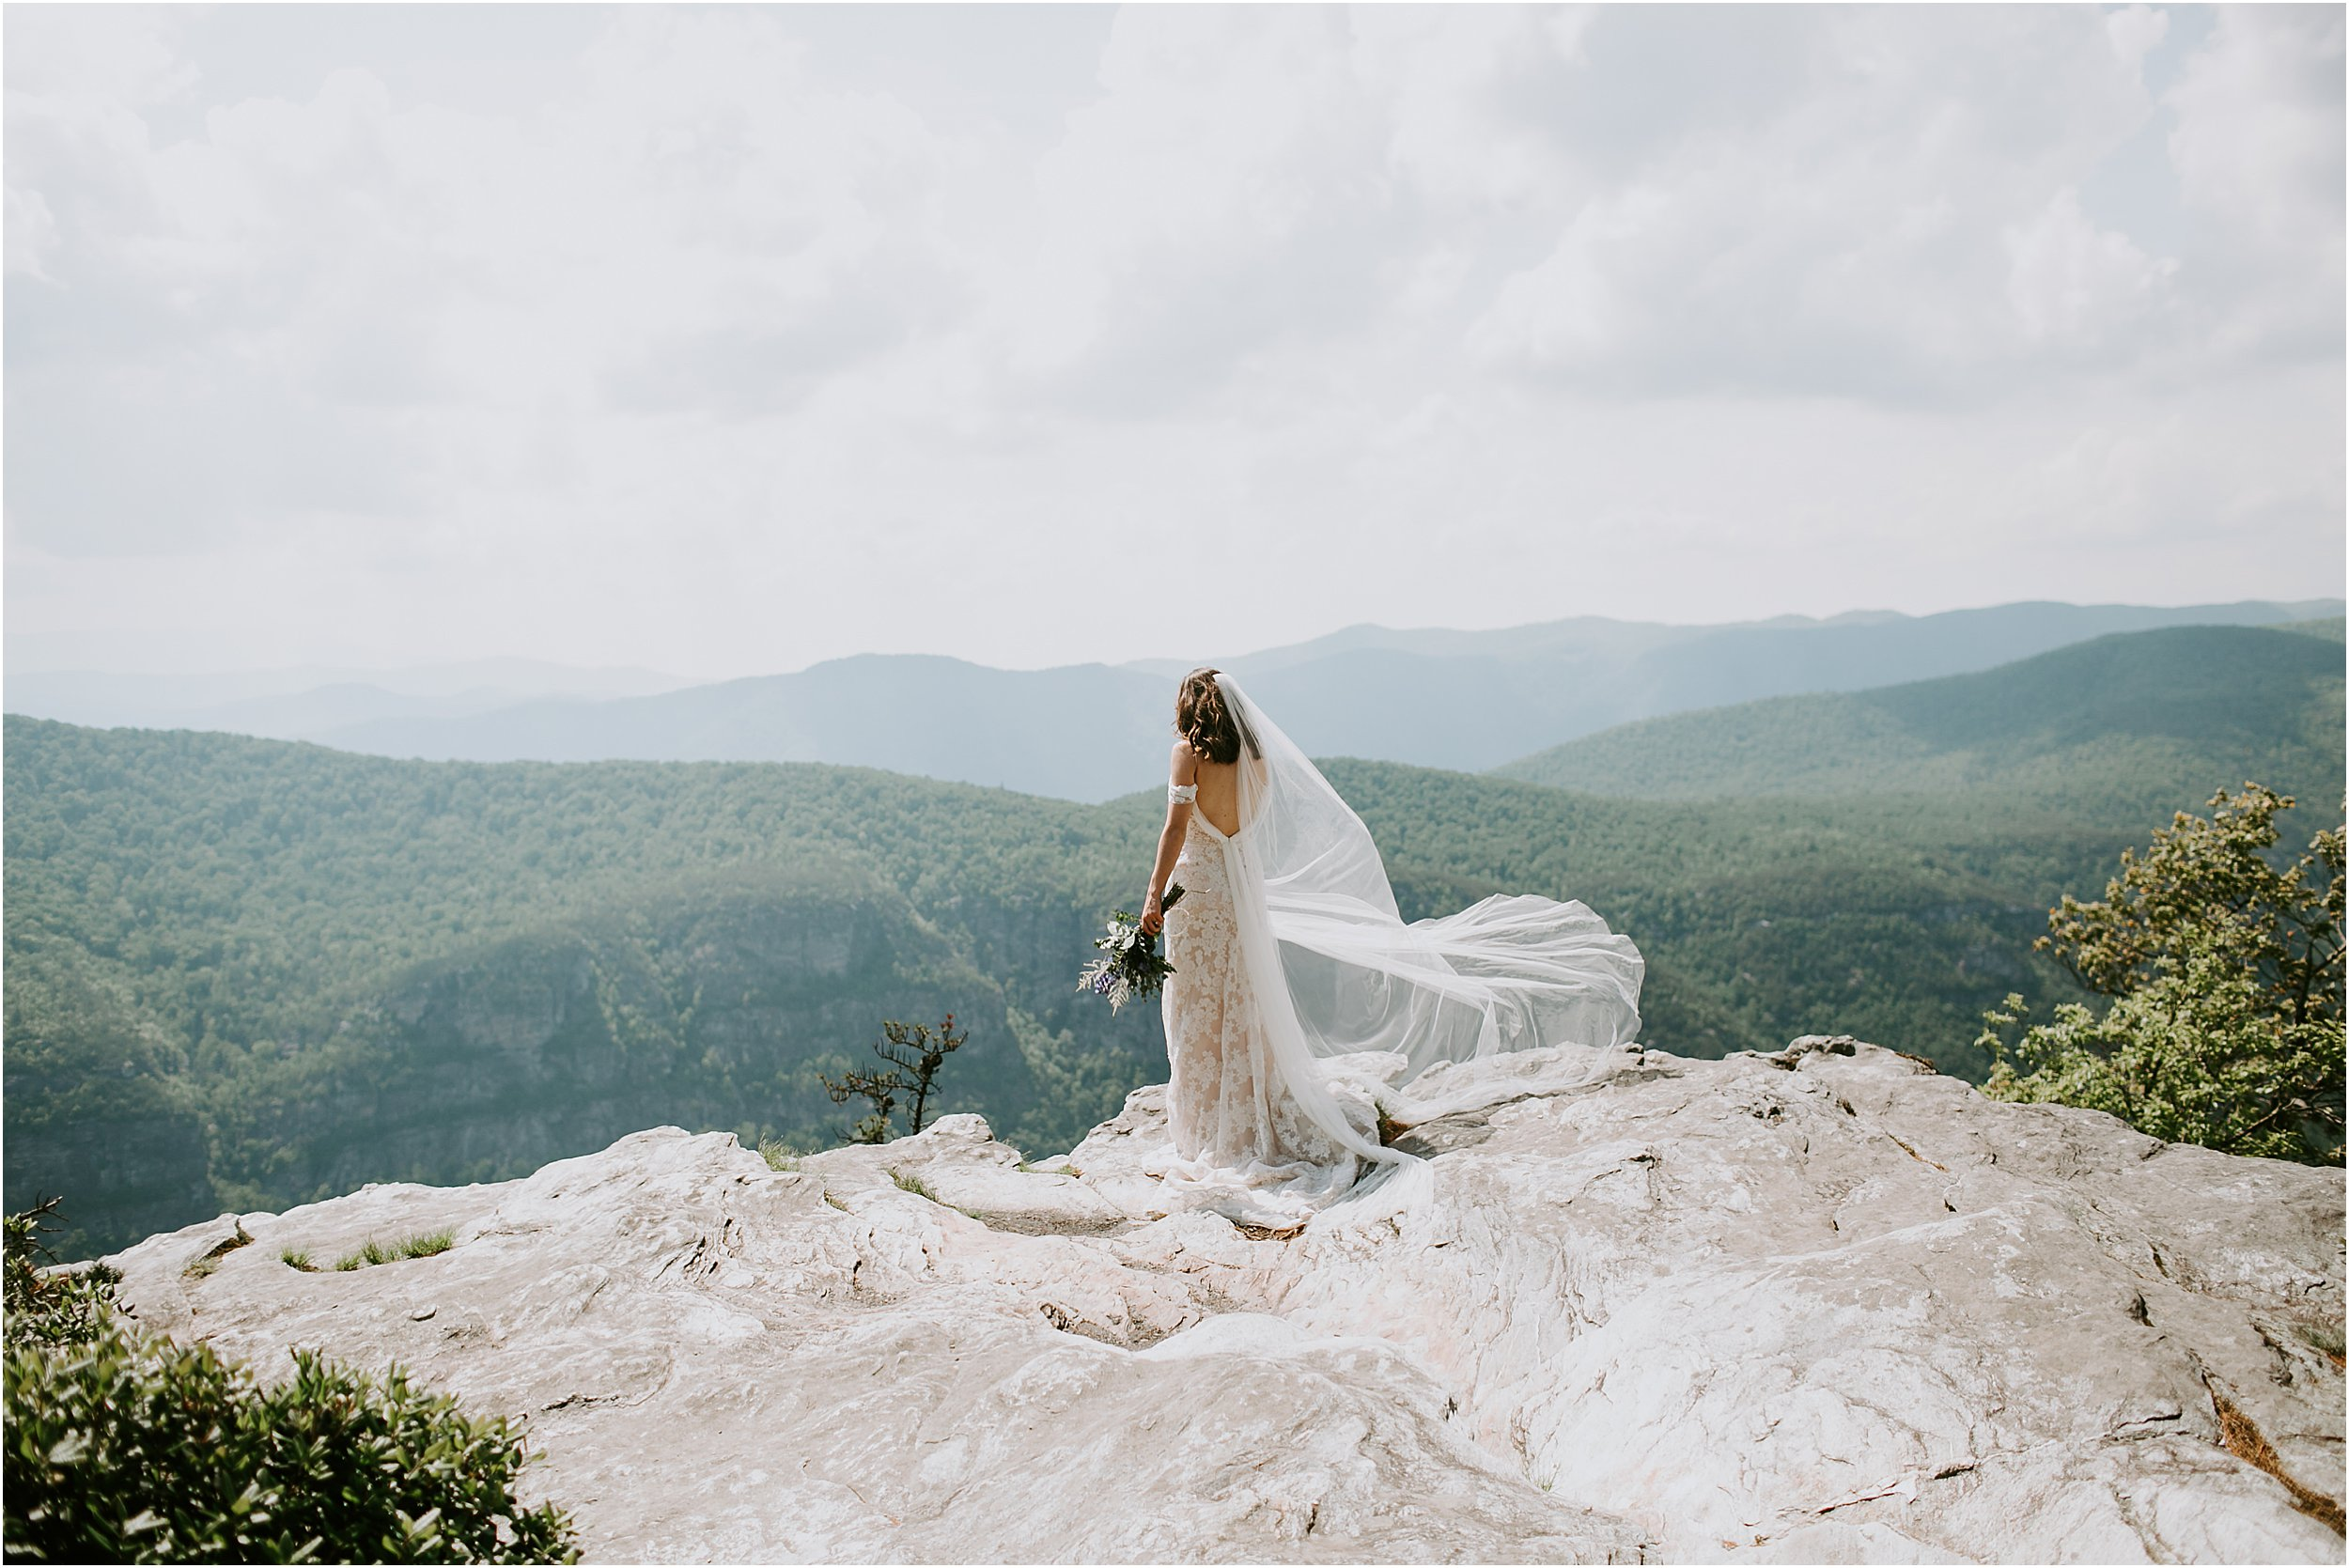 A bride in a wedding dress stands on a rock overlooking a valley. She is in the mountains of the Blue Ridge Parkway and her veil is blowing in the wind. She is facing away from the camera, looking at the mountains, and has a bouquet of flowers in her hand.